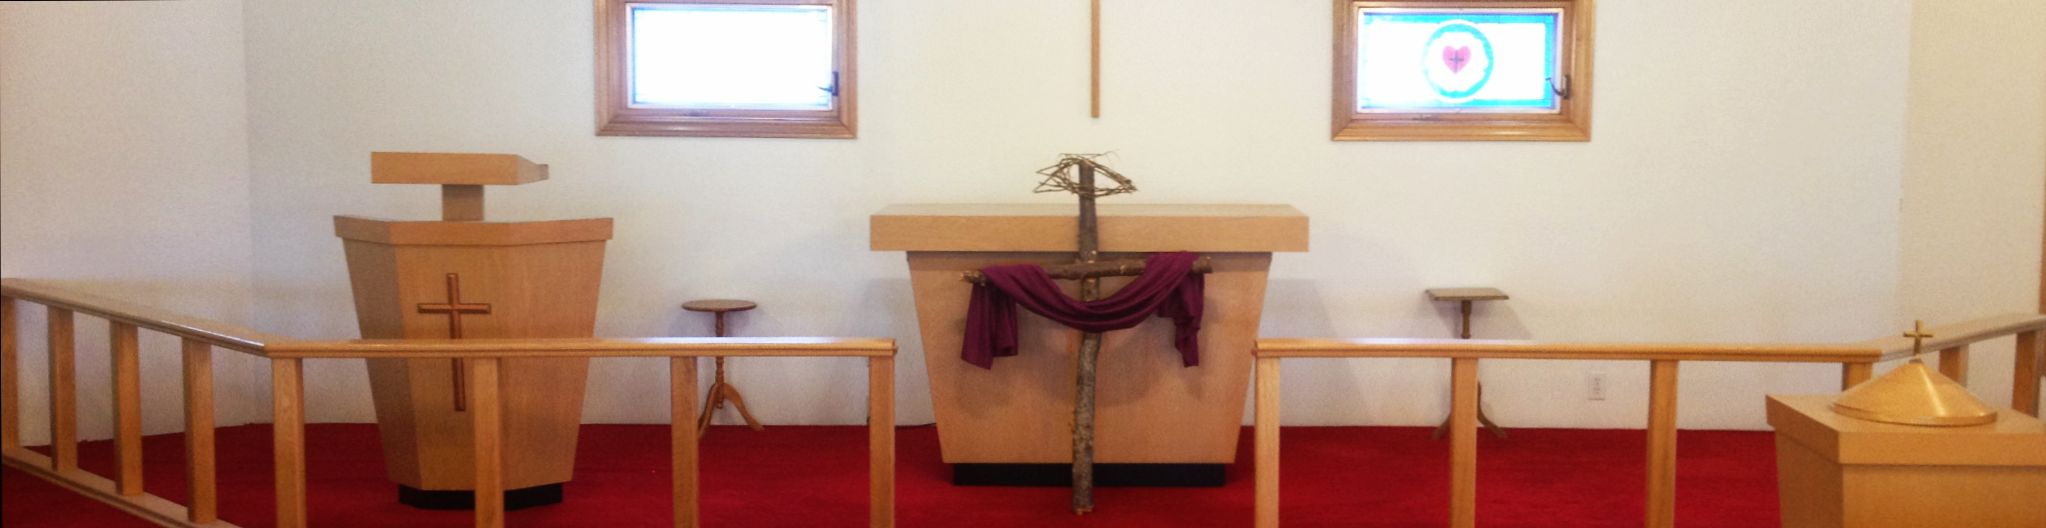 Lent, Holy Week and Easter at Good Shepherd Lutheran Church